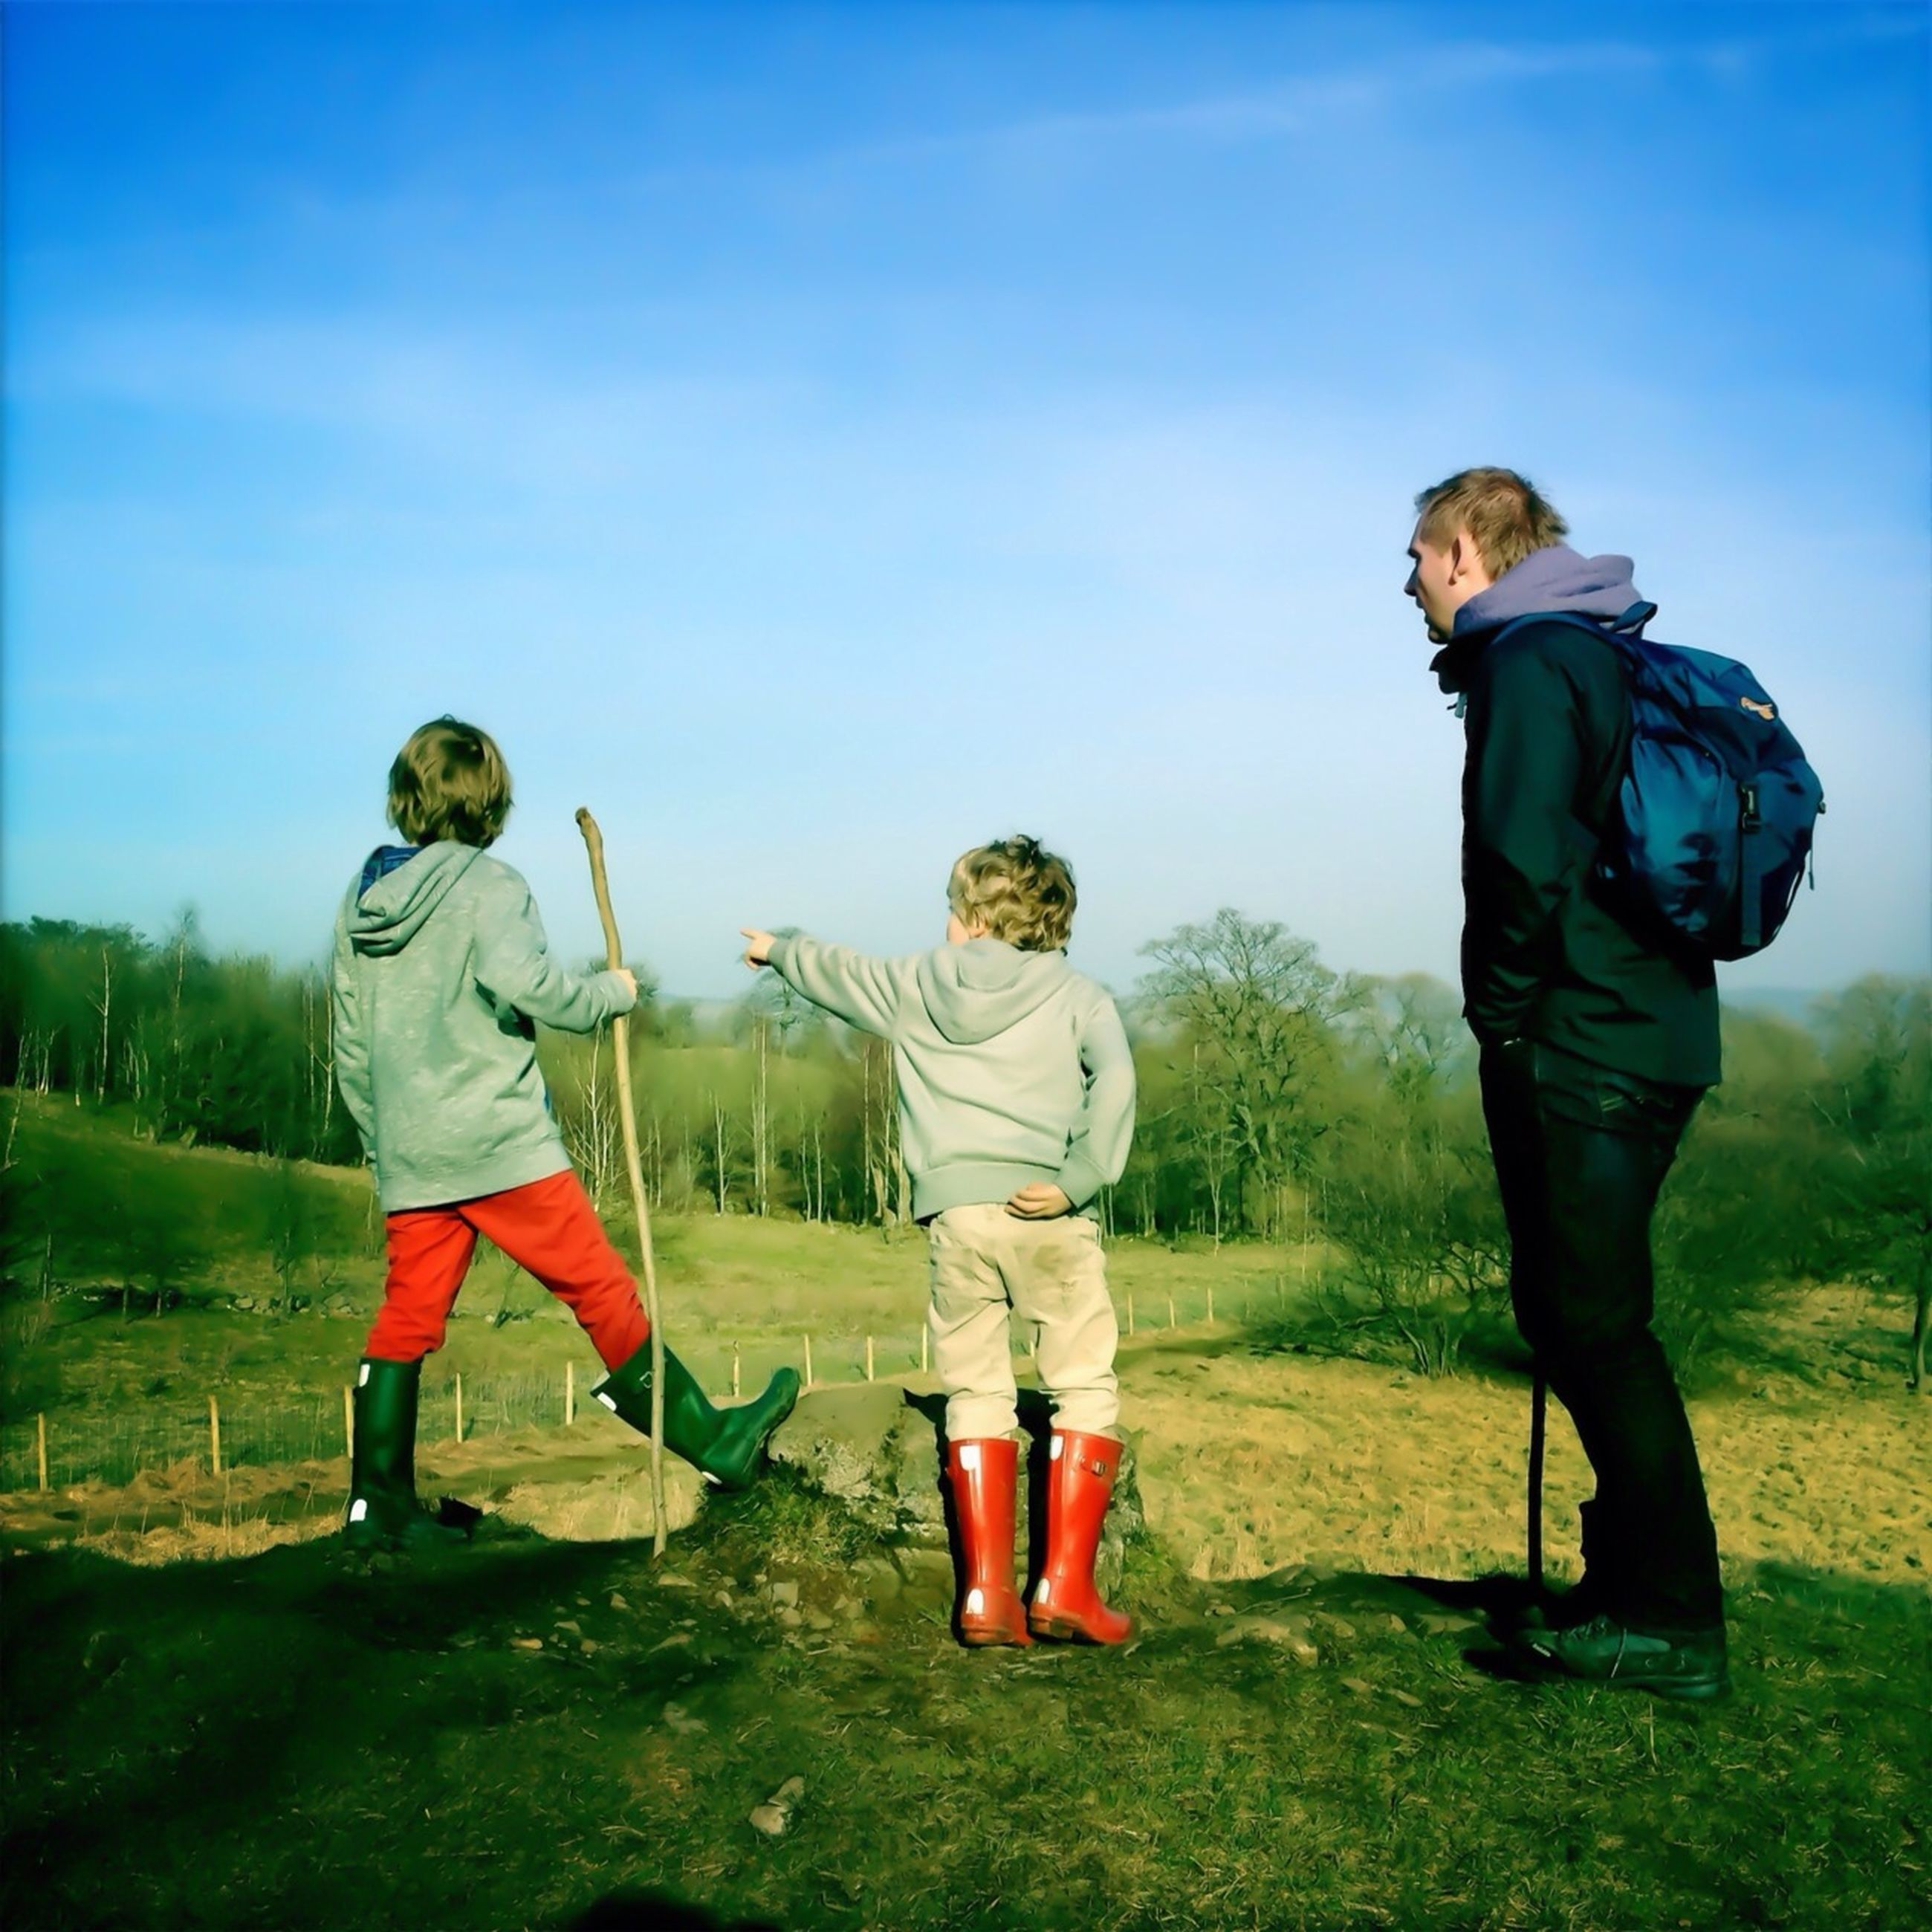 full length, lifestyles, casual clothing, leisure activity, childhood, boys, togetherness, rear view, girls, family, elementary age, bonding, men, sibling, love, standing, grass, family with one child